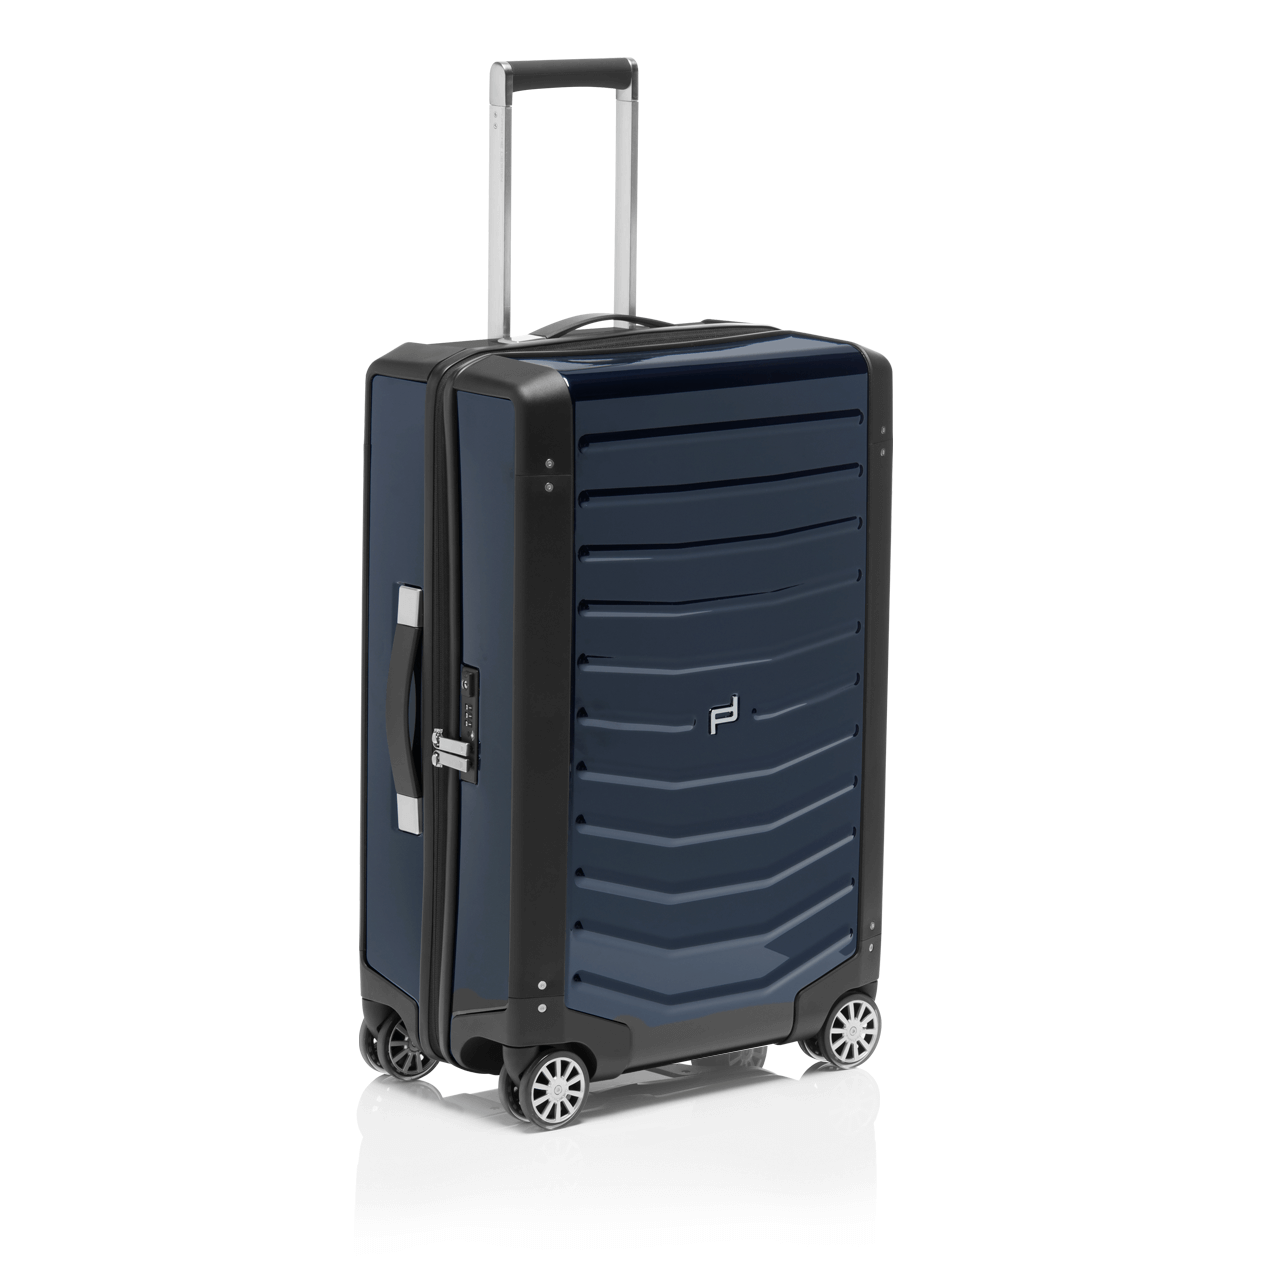 ROADSTER HARDCASE TROLLEY M - фото 1